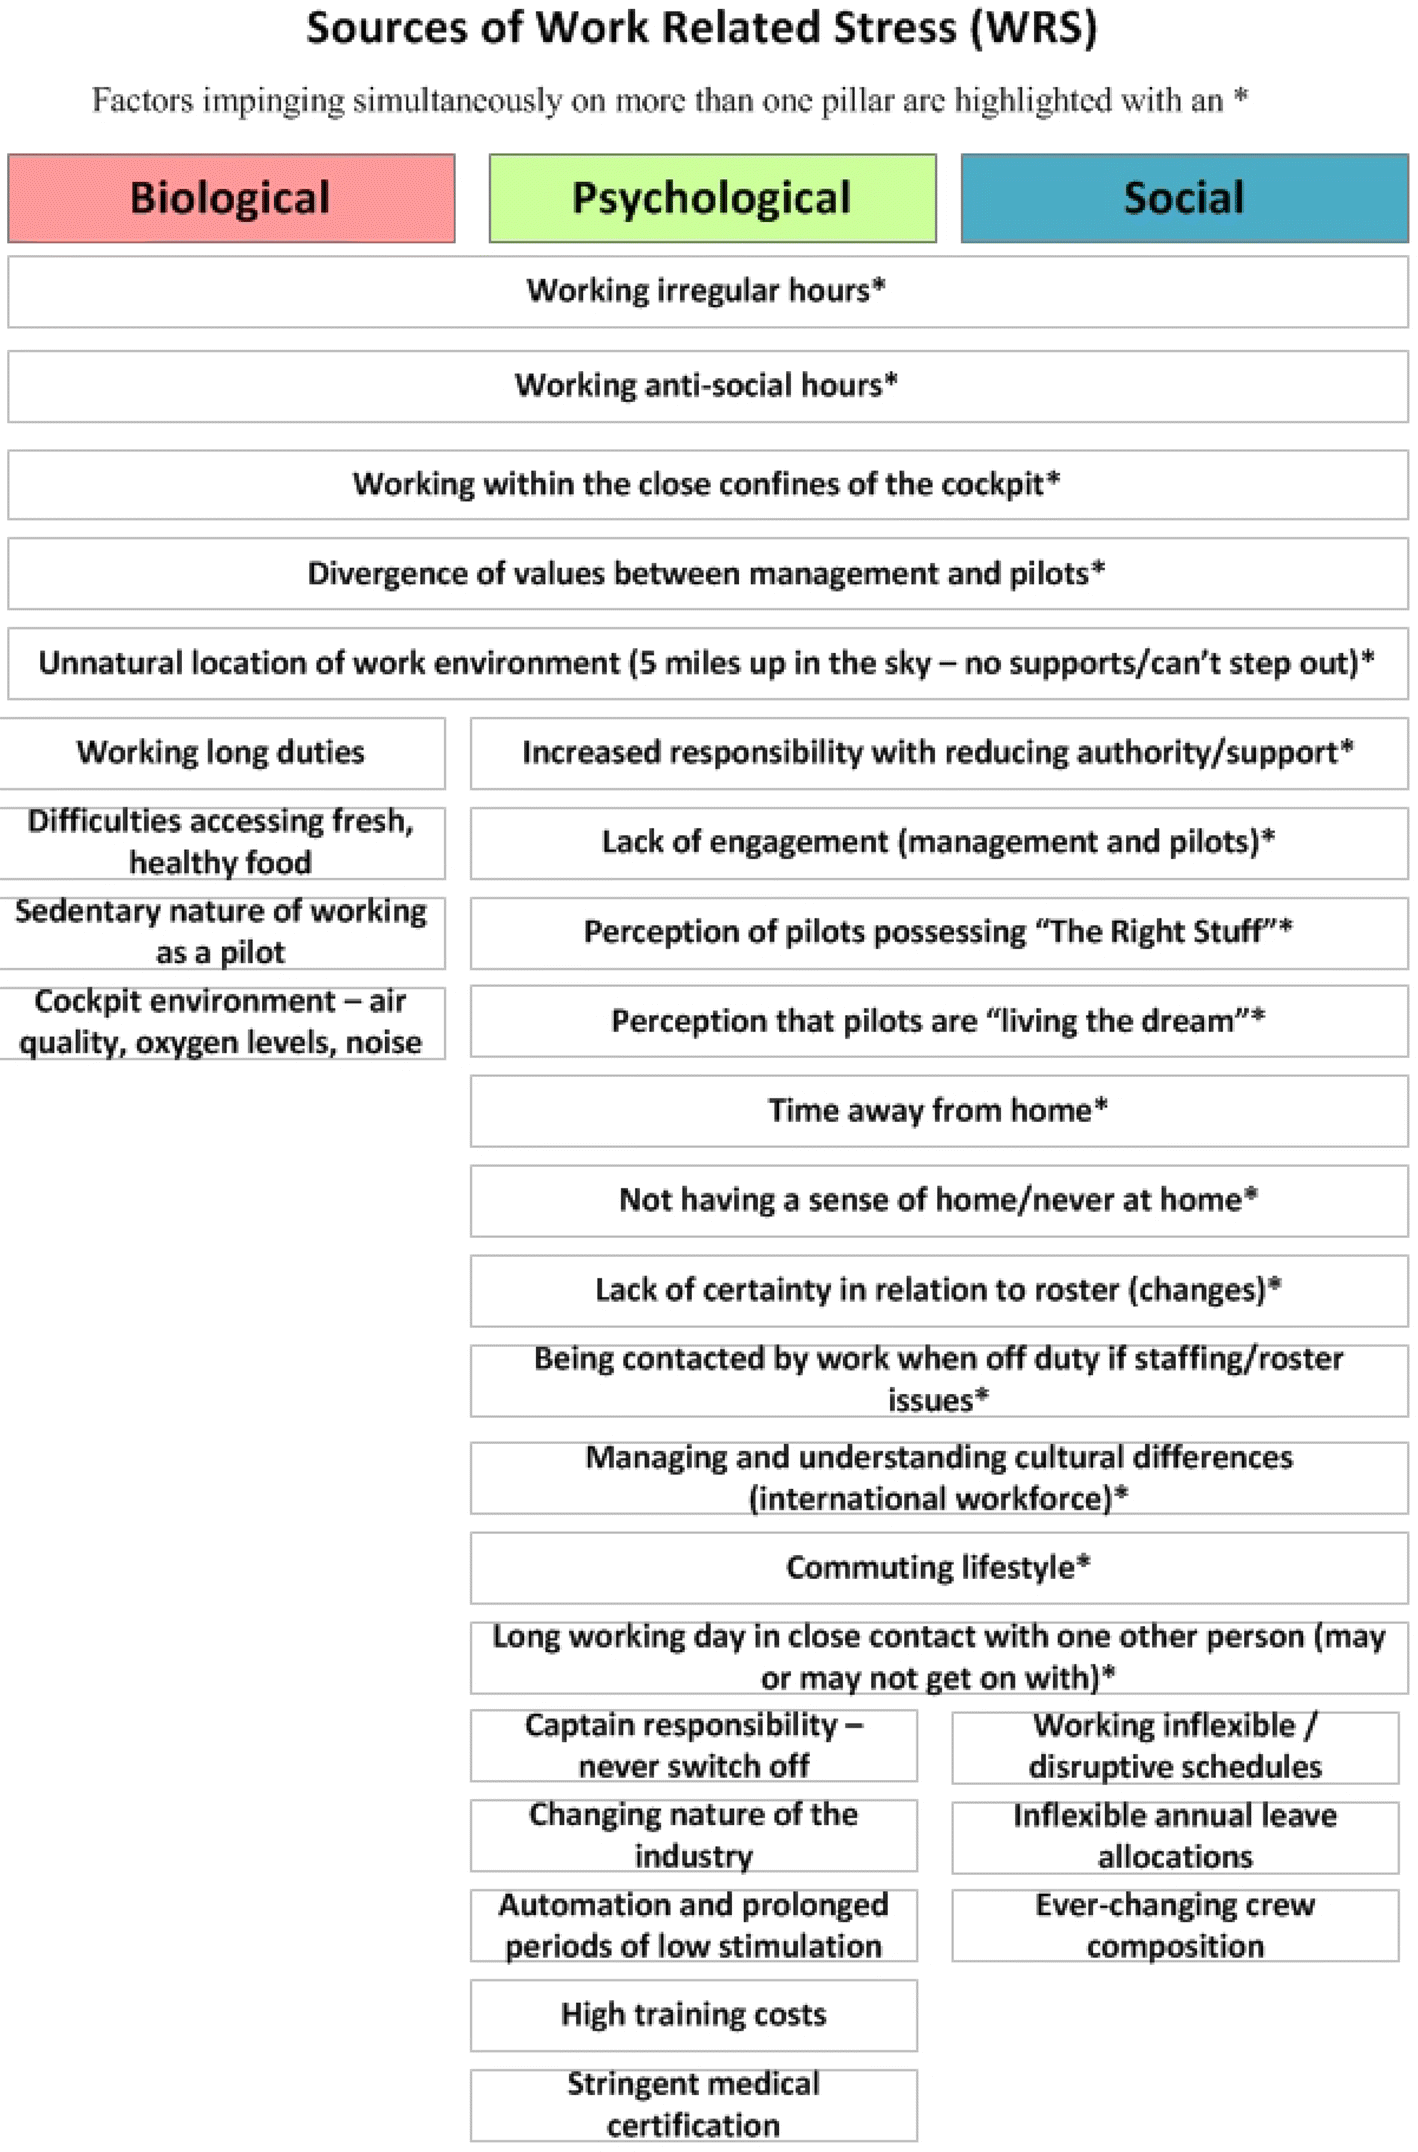 Interventions to support the management of work-related